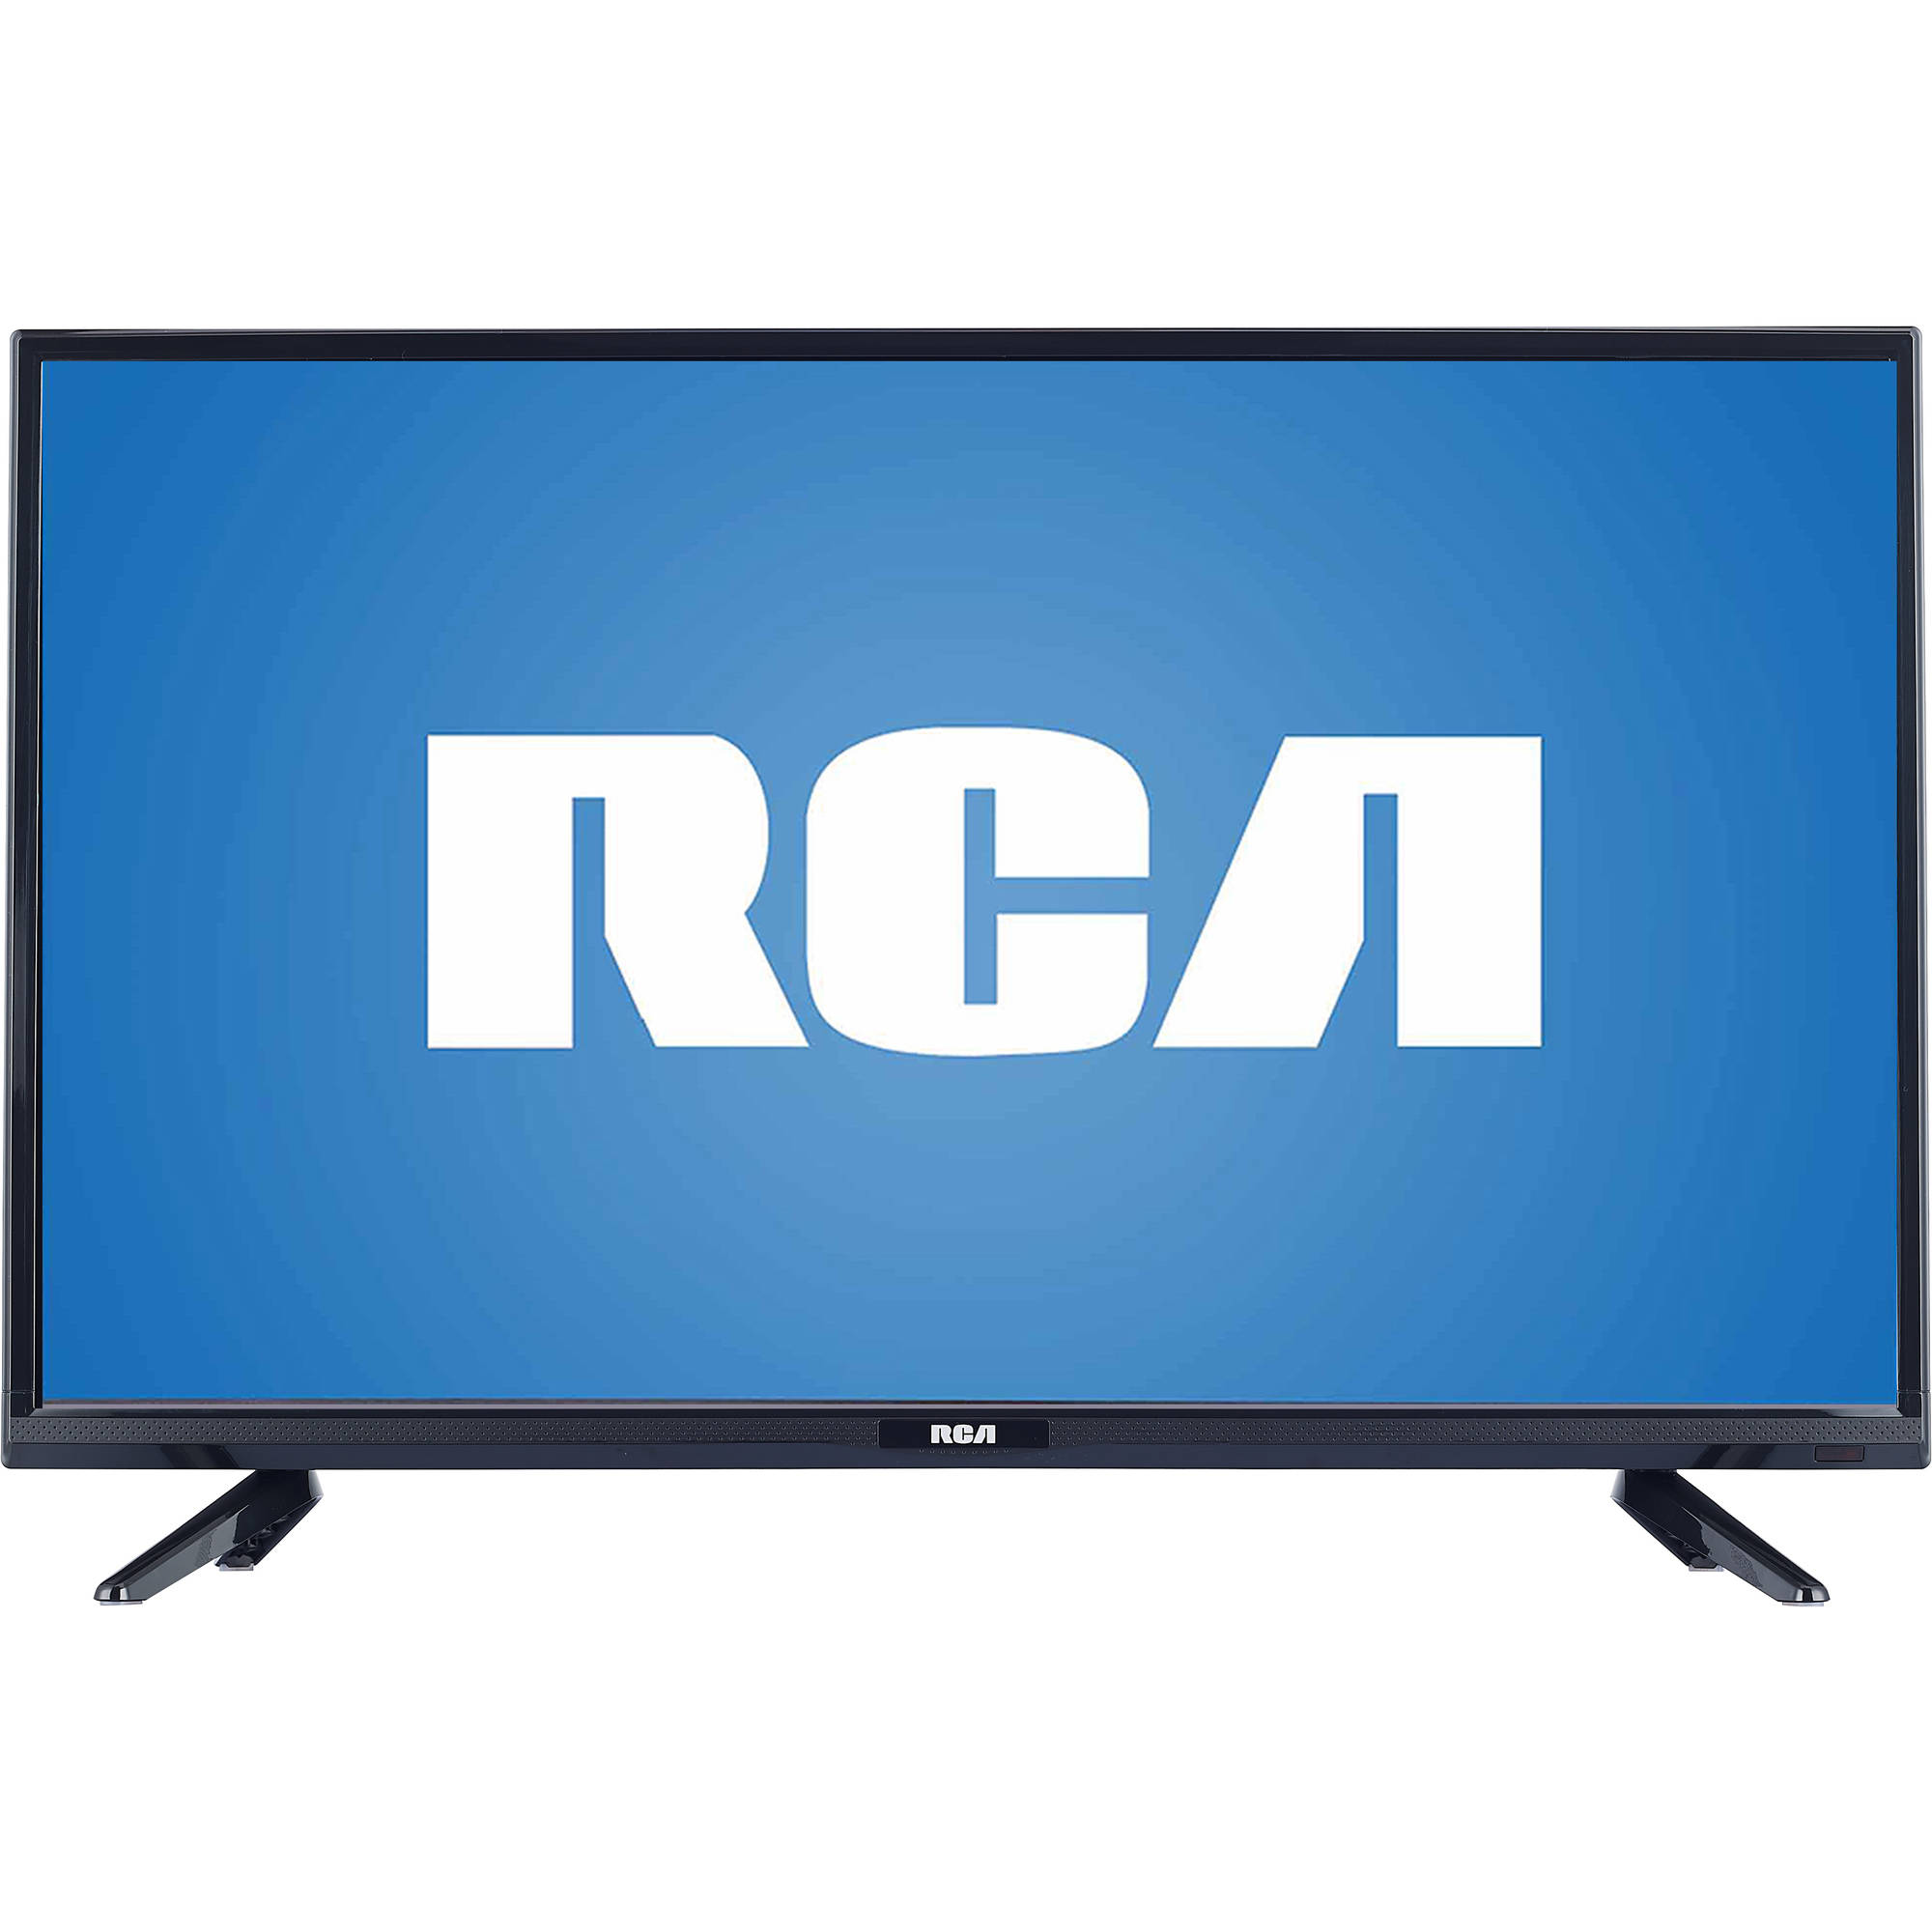 32 Inch Rca Wiring Diagram Library For Smart Tv Class Hd 720p Led With Built In Dvd Player